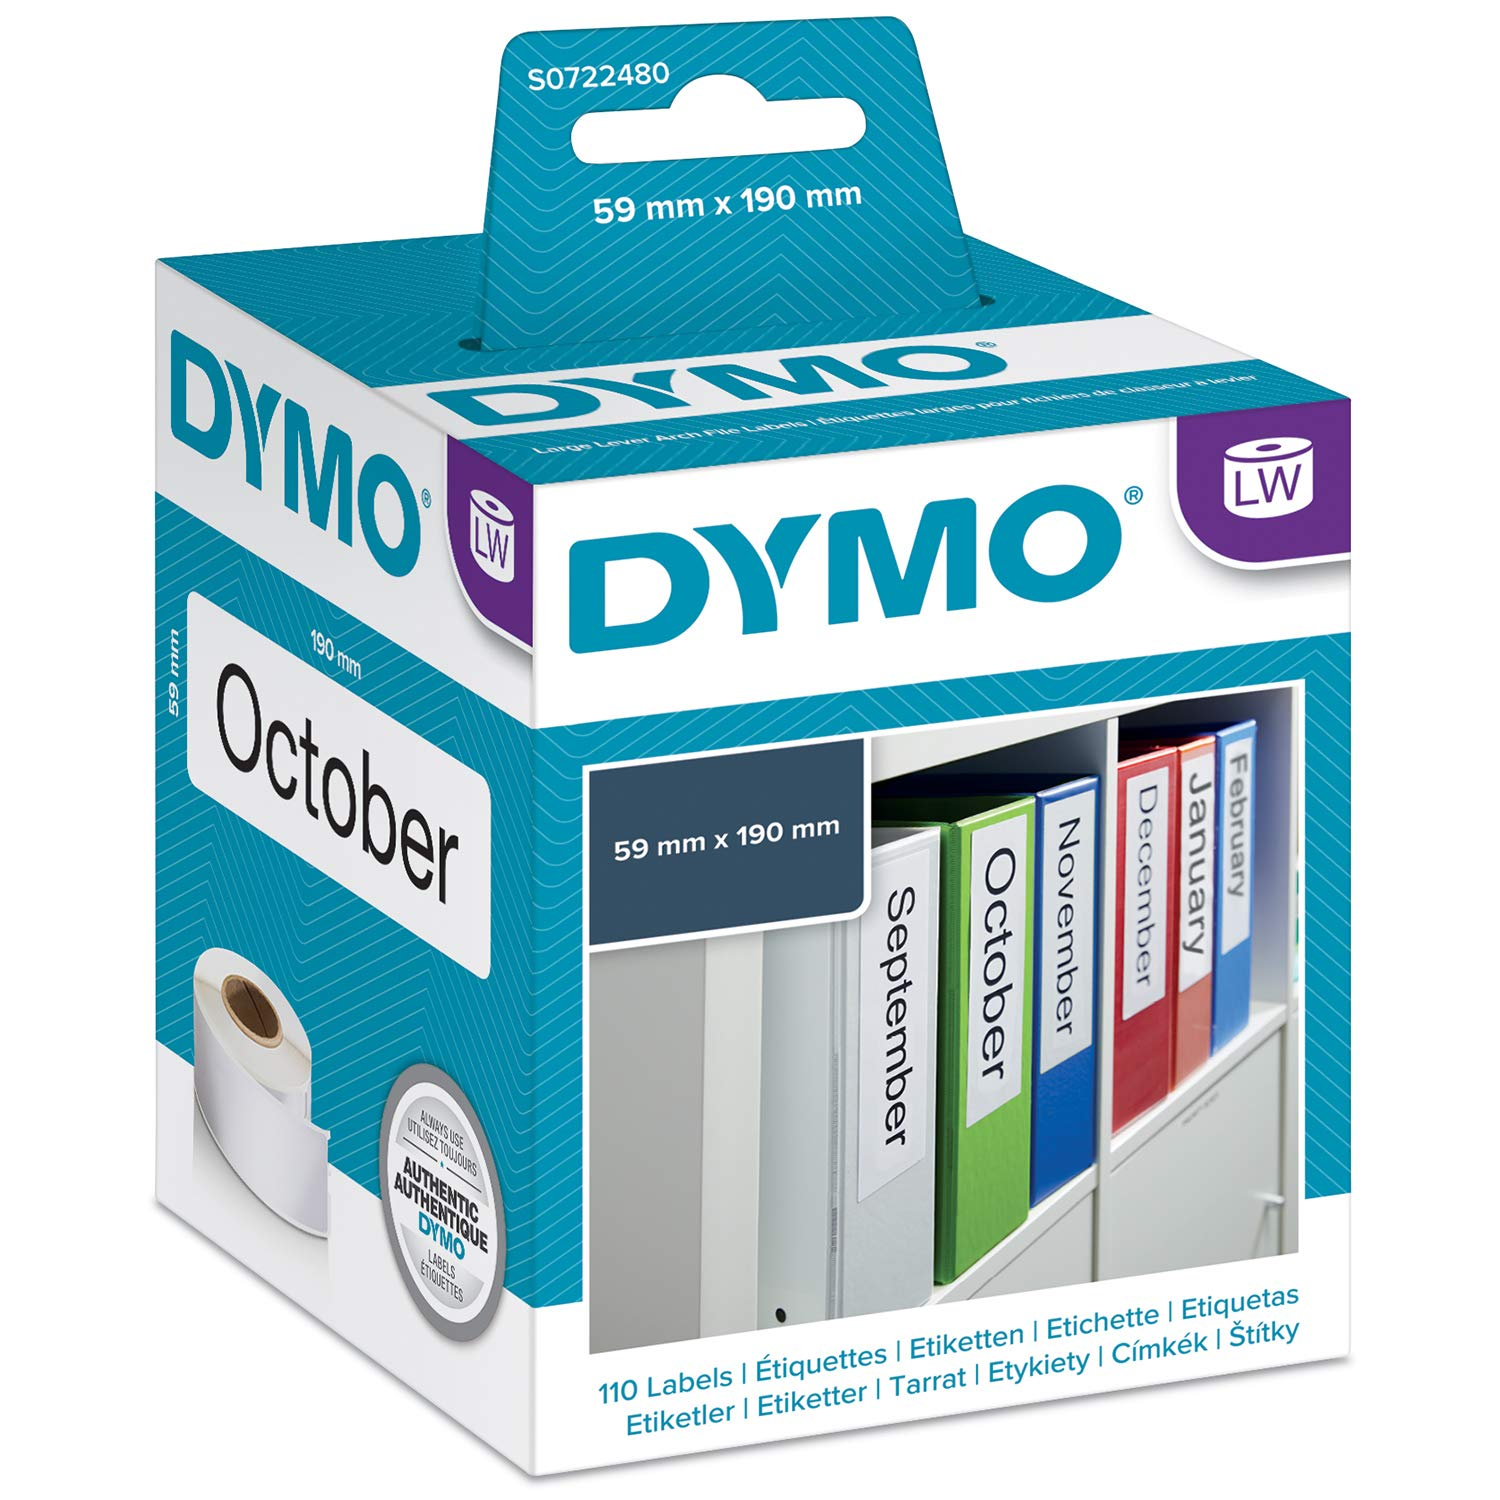 DYMO LW 1 Part Internet Postage Labels for LabelWriter Label Printers, White, 2-5/16'' x 7-1/2'', 1 roll of 110 (99019) by DYMO